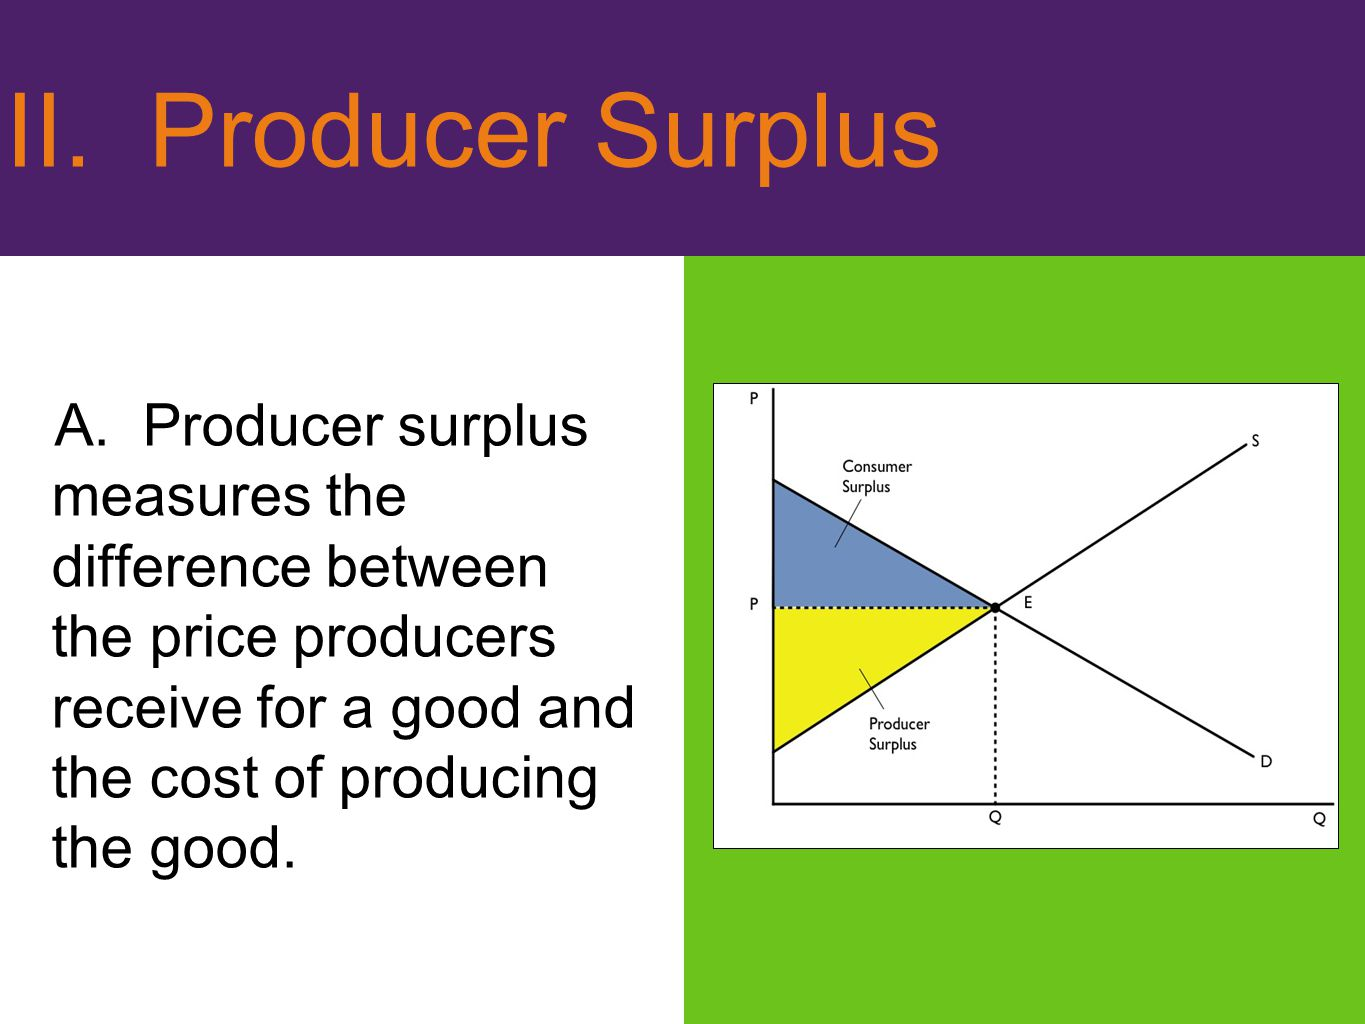 II. Producer Surplus